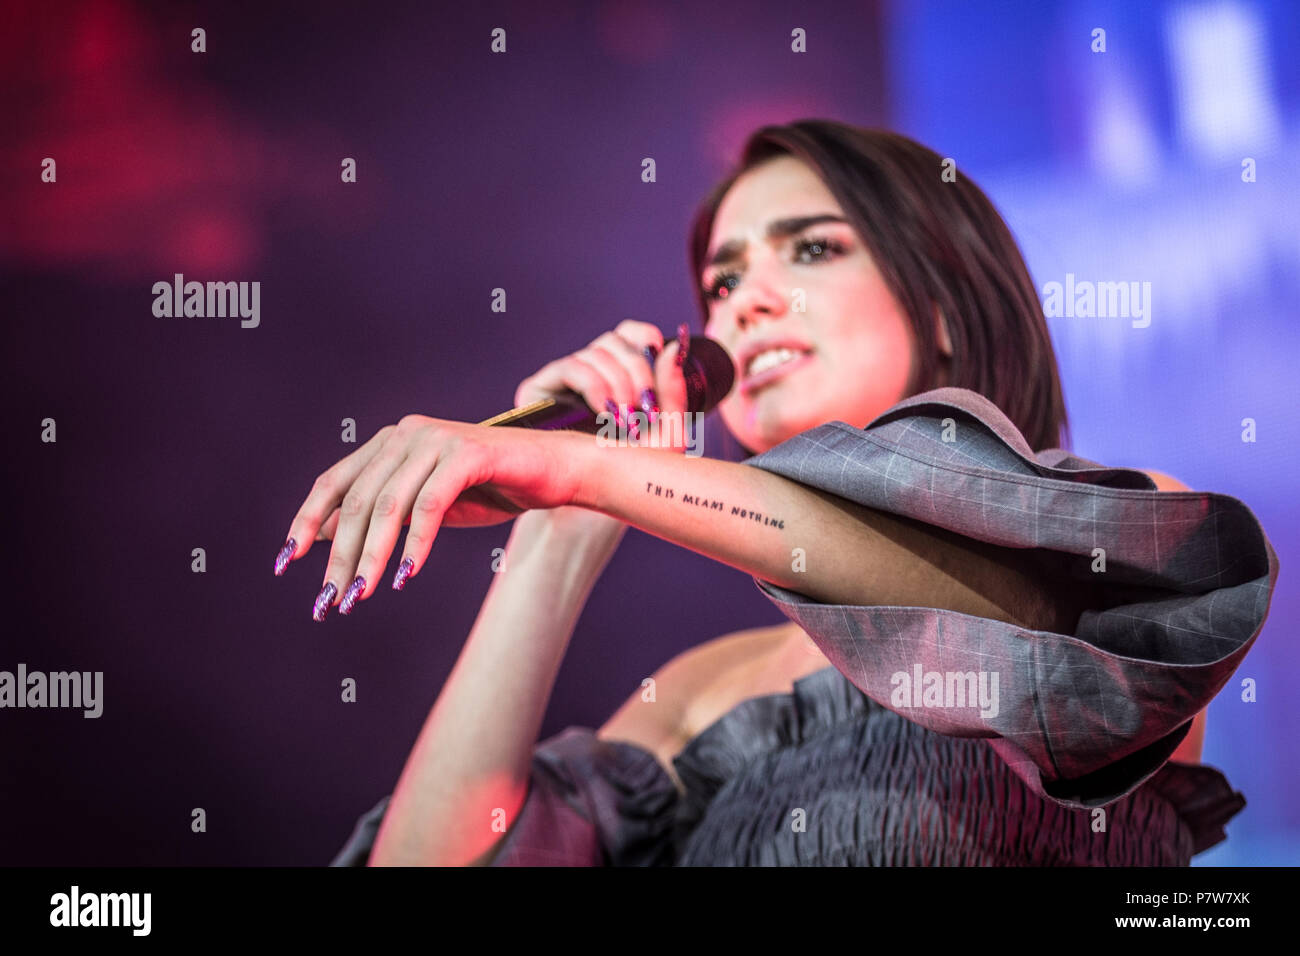 Dua Lipa Tattoo: Roskilde, Denmark. 7 July 2018. . The English Singer And